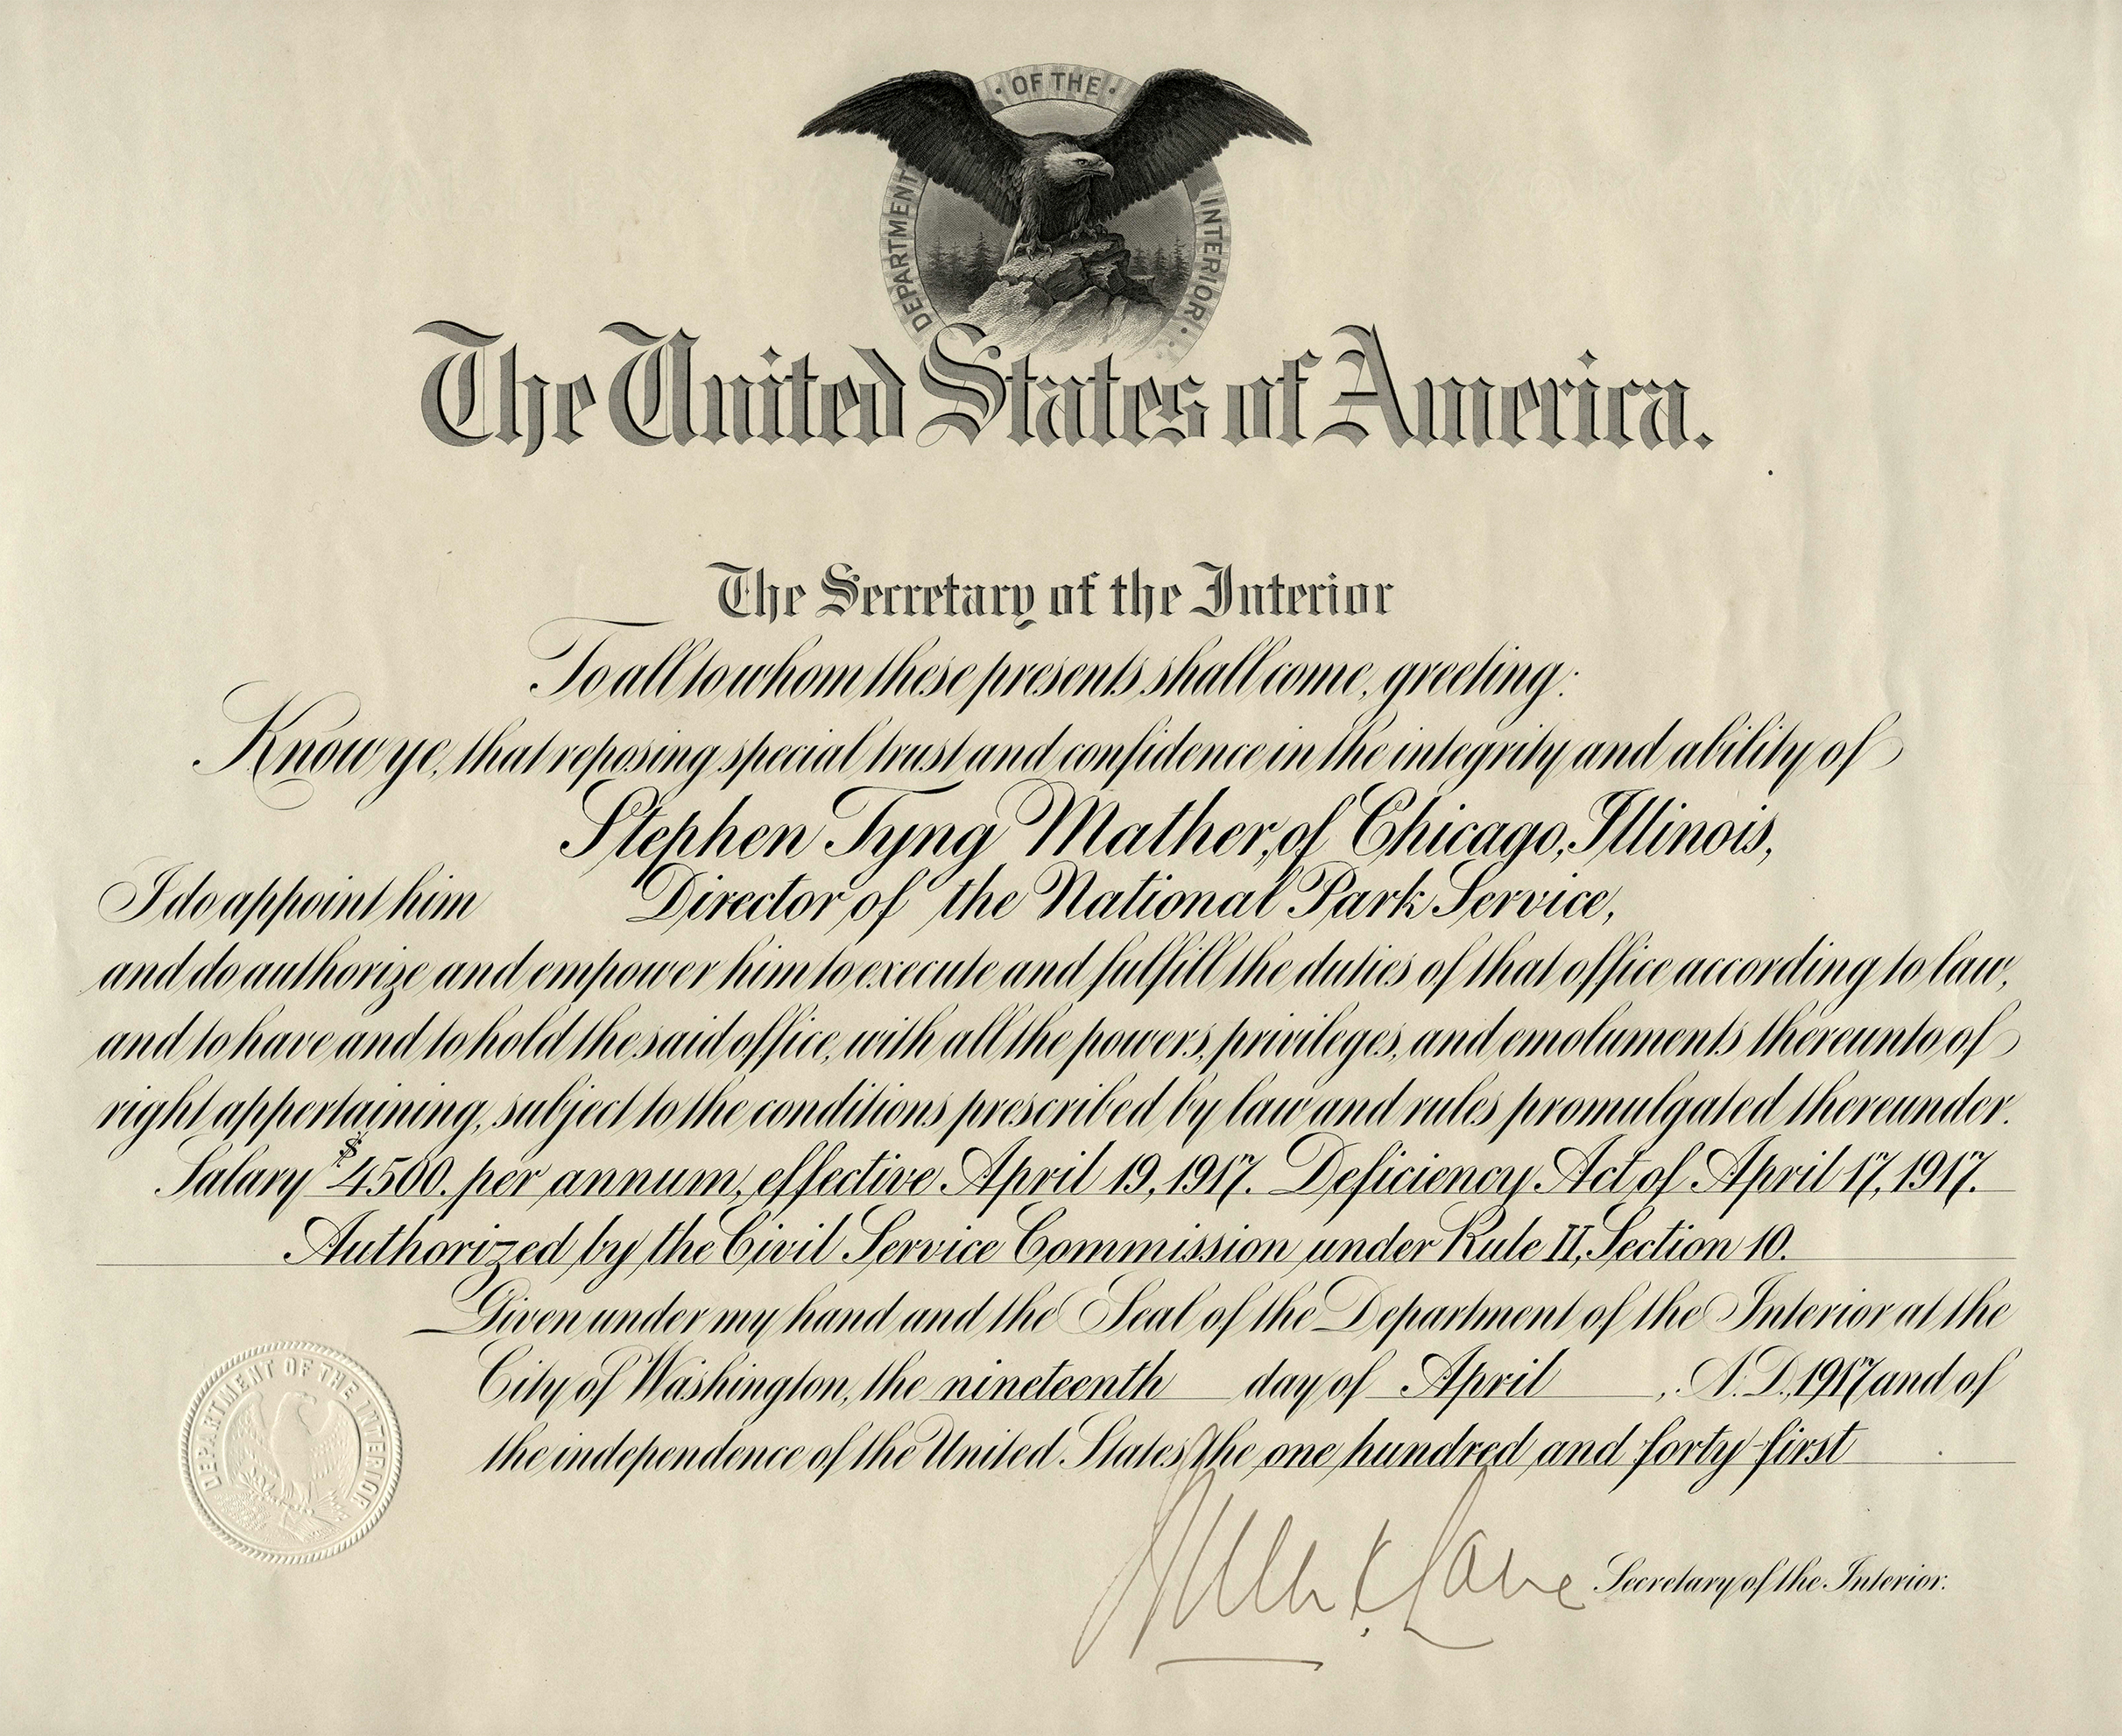 Certificate of appointment as Director of U.S. National Park Service